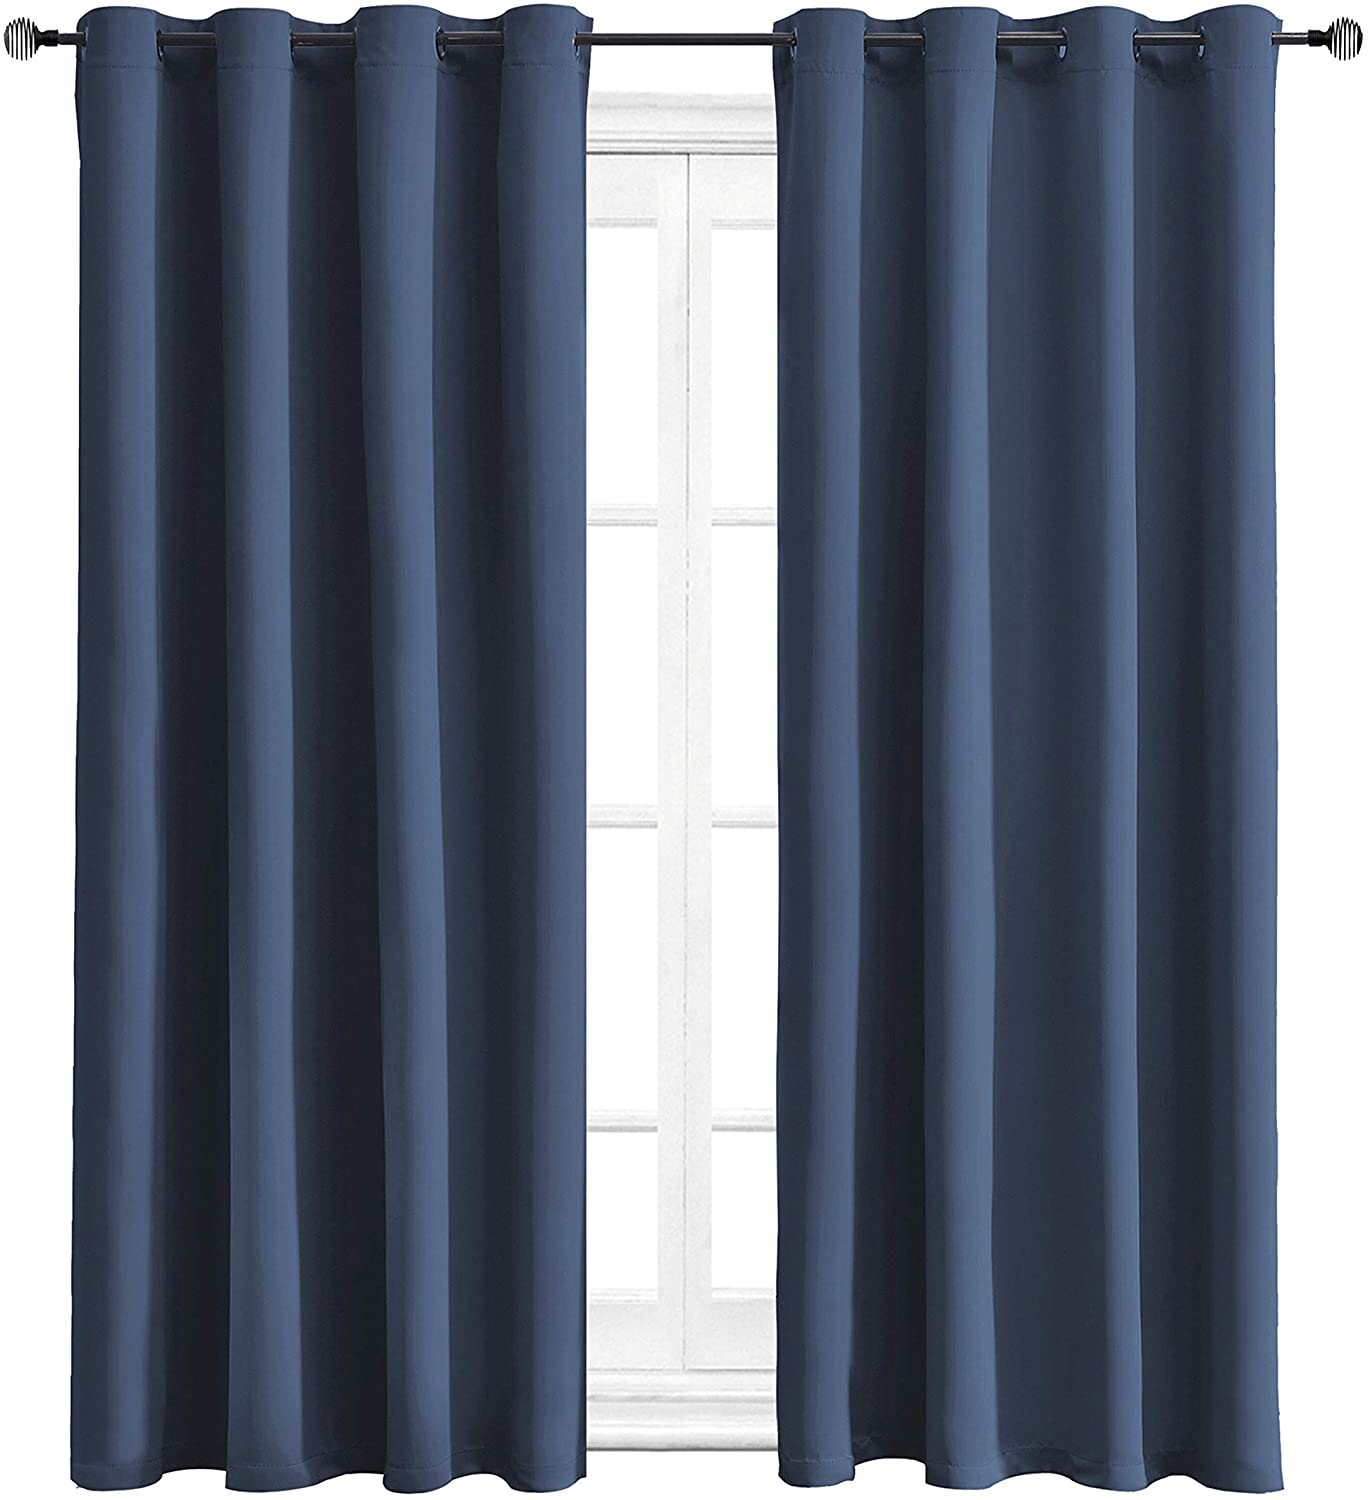 WONTEX Blackout Curtains Room Darkening Thermal Insulated with Grommet Window Curtain for Living Room, 52 x 54 inch, Navy, 2 Panels